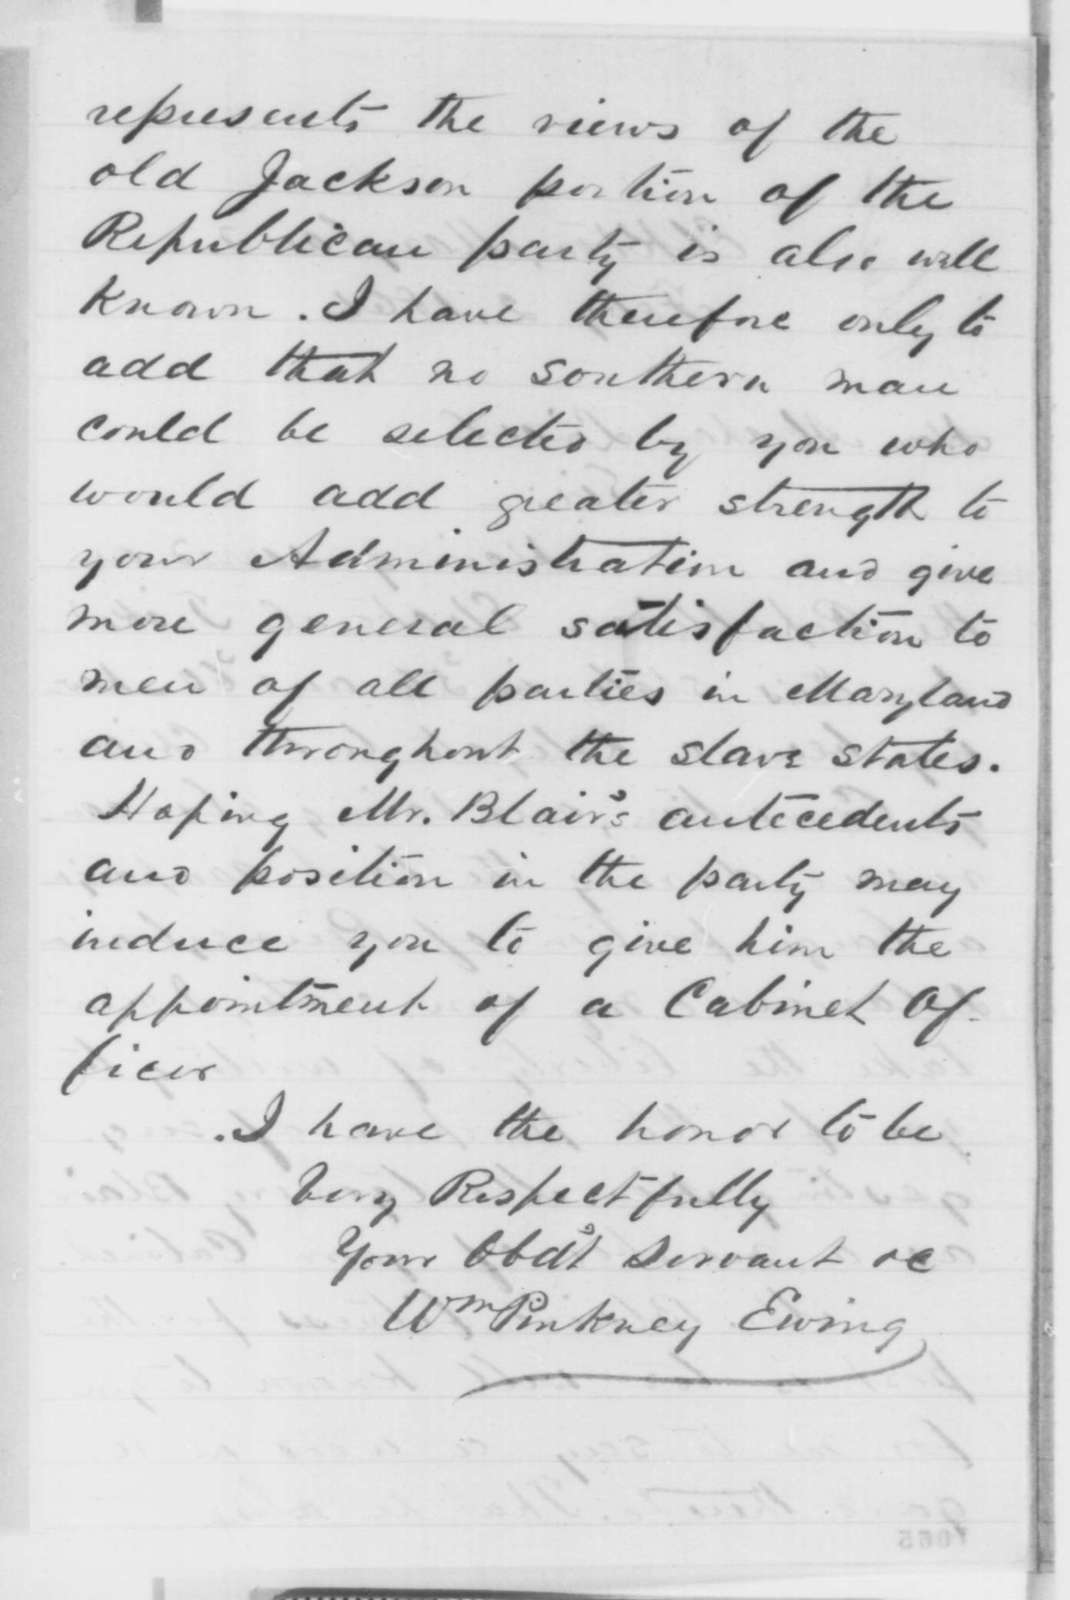 William Pinckney Ewing to Abraham Lincoln, Saturday, February 02, 1861  (Recommends Montgomery Blair for cabinet)